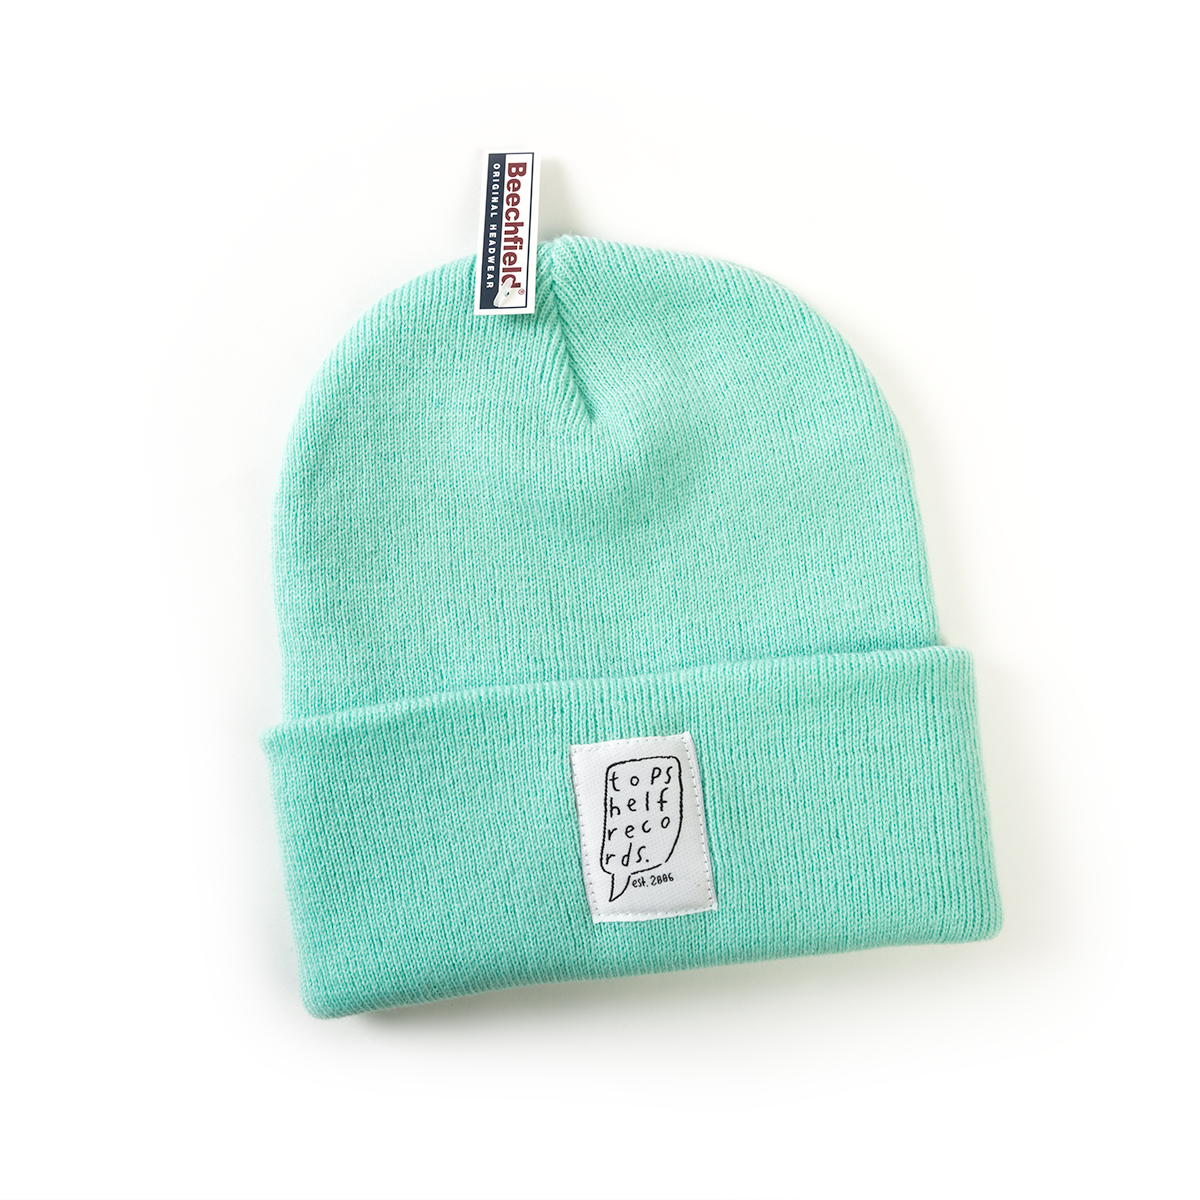 fb35a353a5c Topshelf Records UK - Mint Knit Hat with Sewn Label